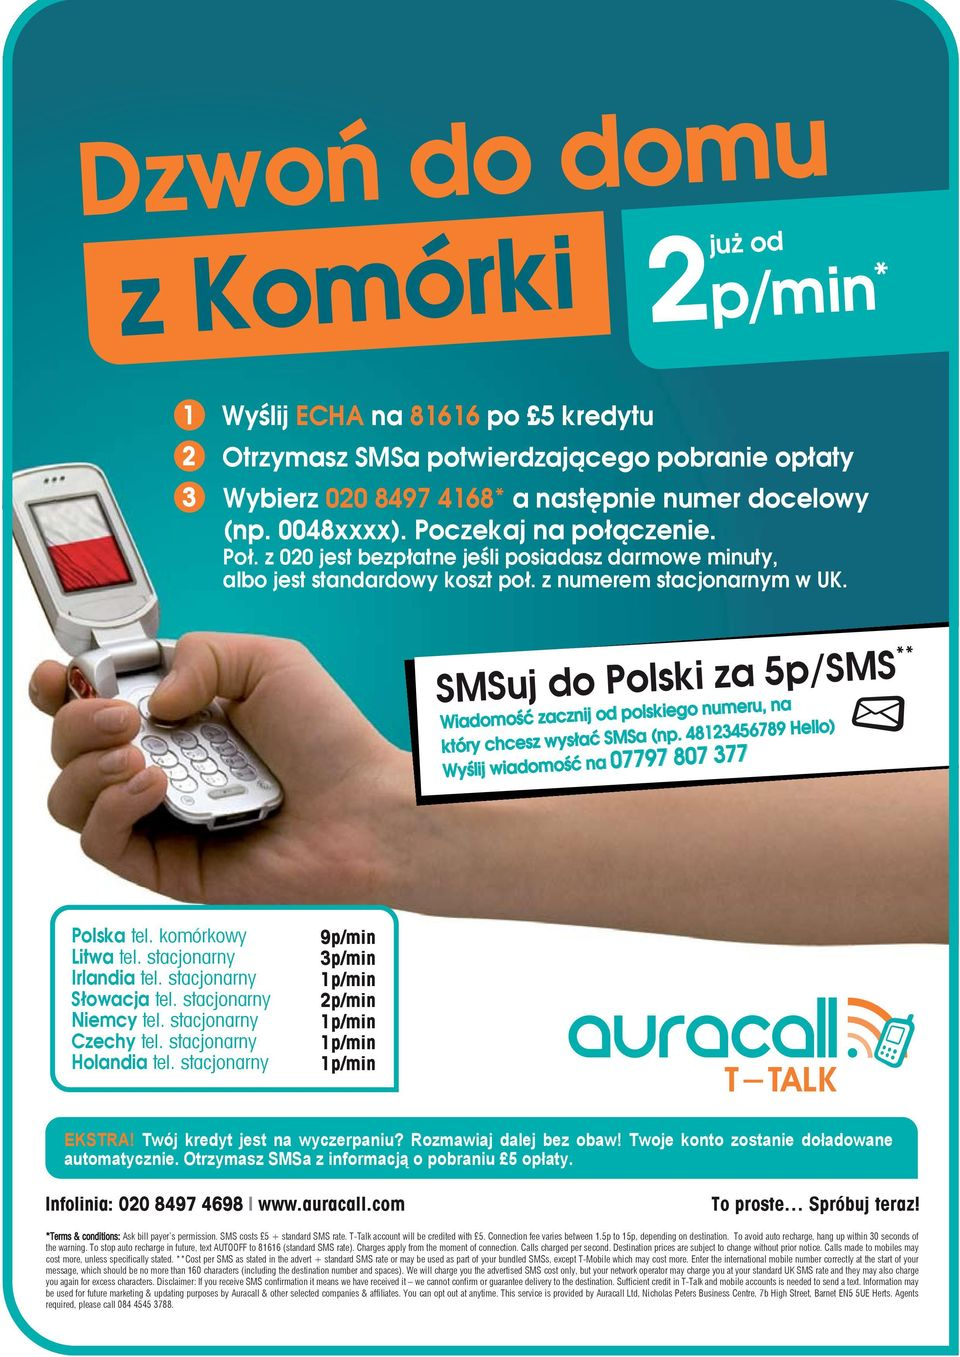 com To proste Spróbuj teraz! 6 *Terms & conditions: Ask bill payer s permission. SMS costs 5 + standard SMS rate. T-Talk account will be credited with 5. Connection fee varies between 1.